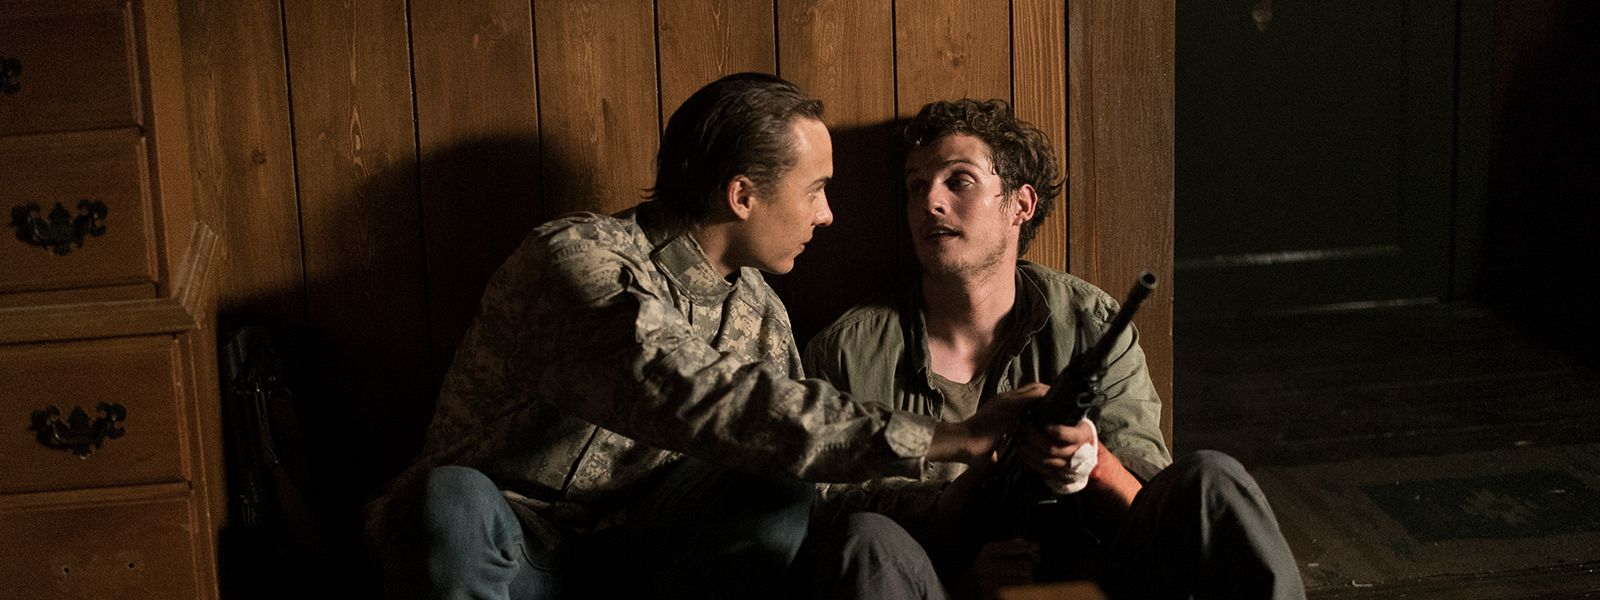 fear-the-walking-dead-episode-309-nick-dillane-troy-sharman-post-800×600